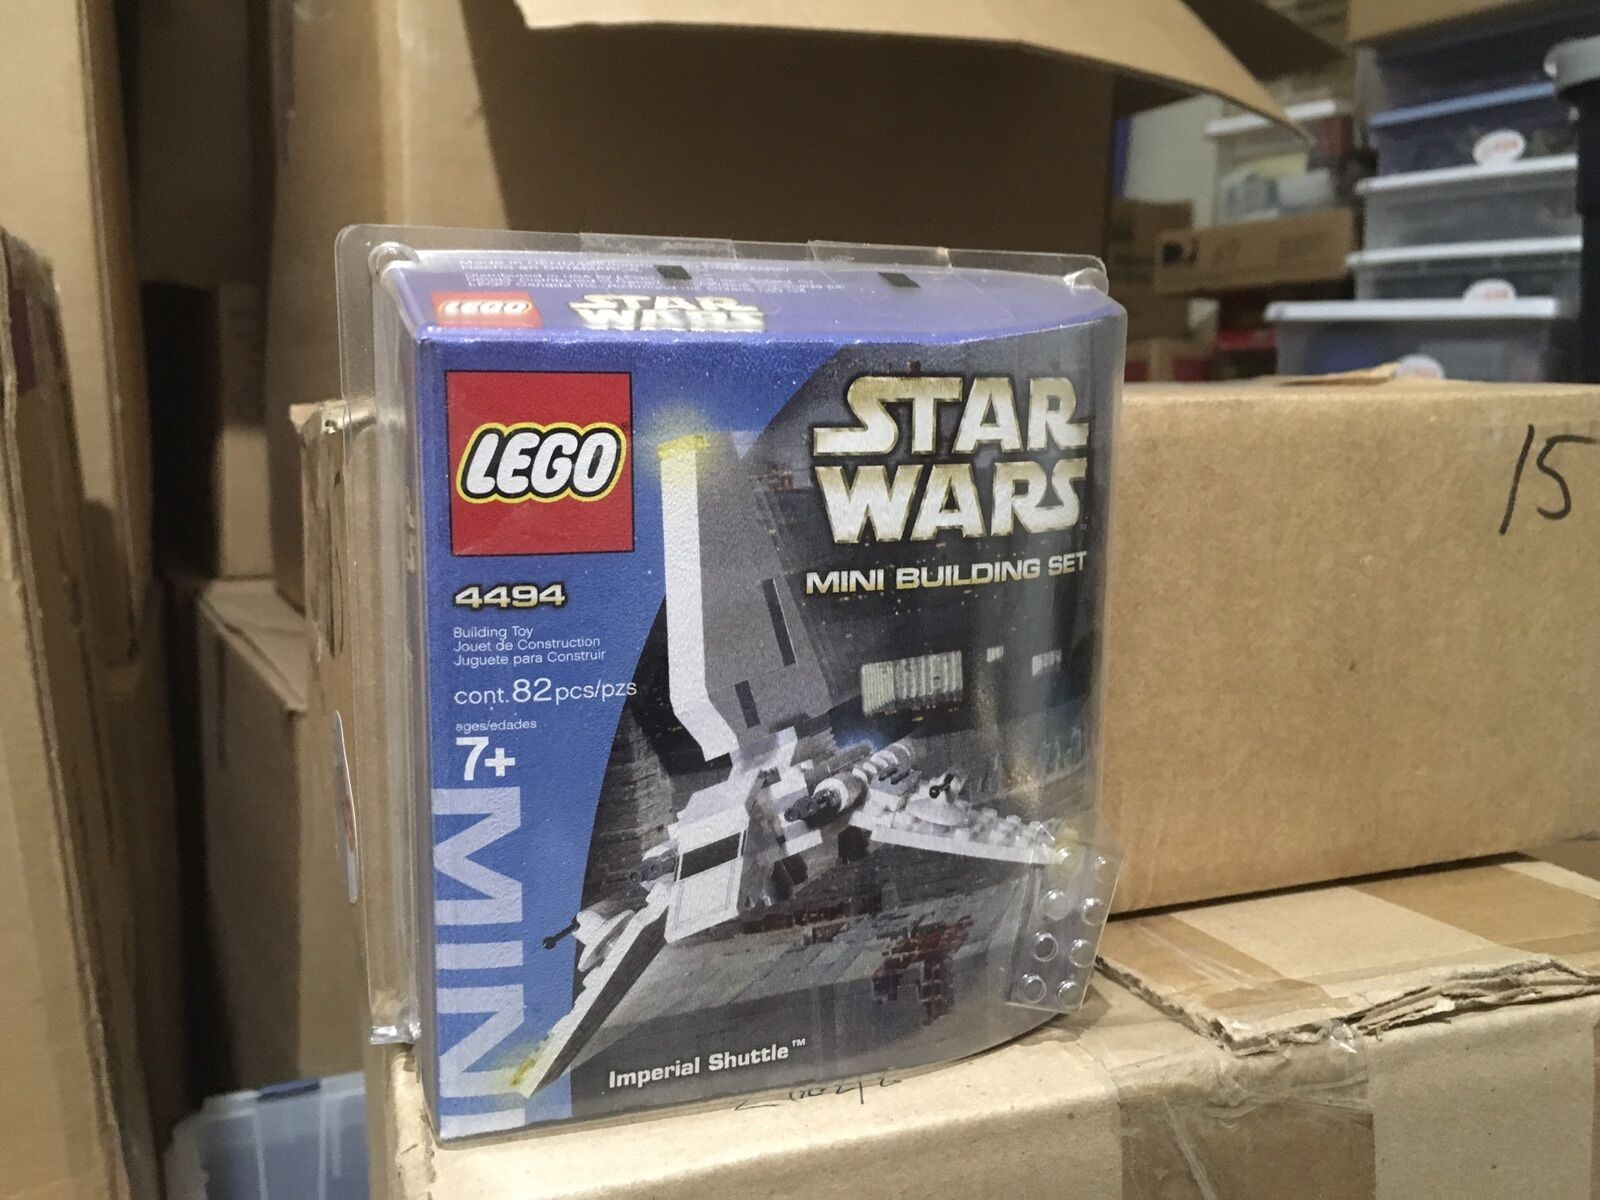 LEGO  4494 : Star Wars Mini Building Set - Imperial Shuttle (82 pcs) NEW